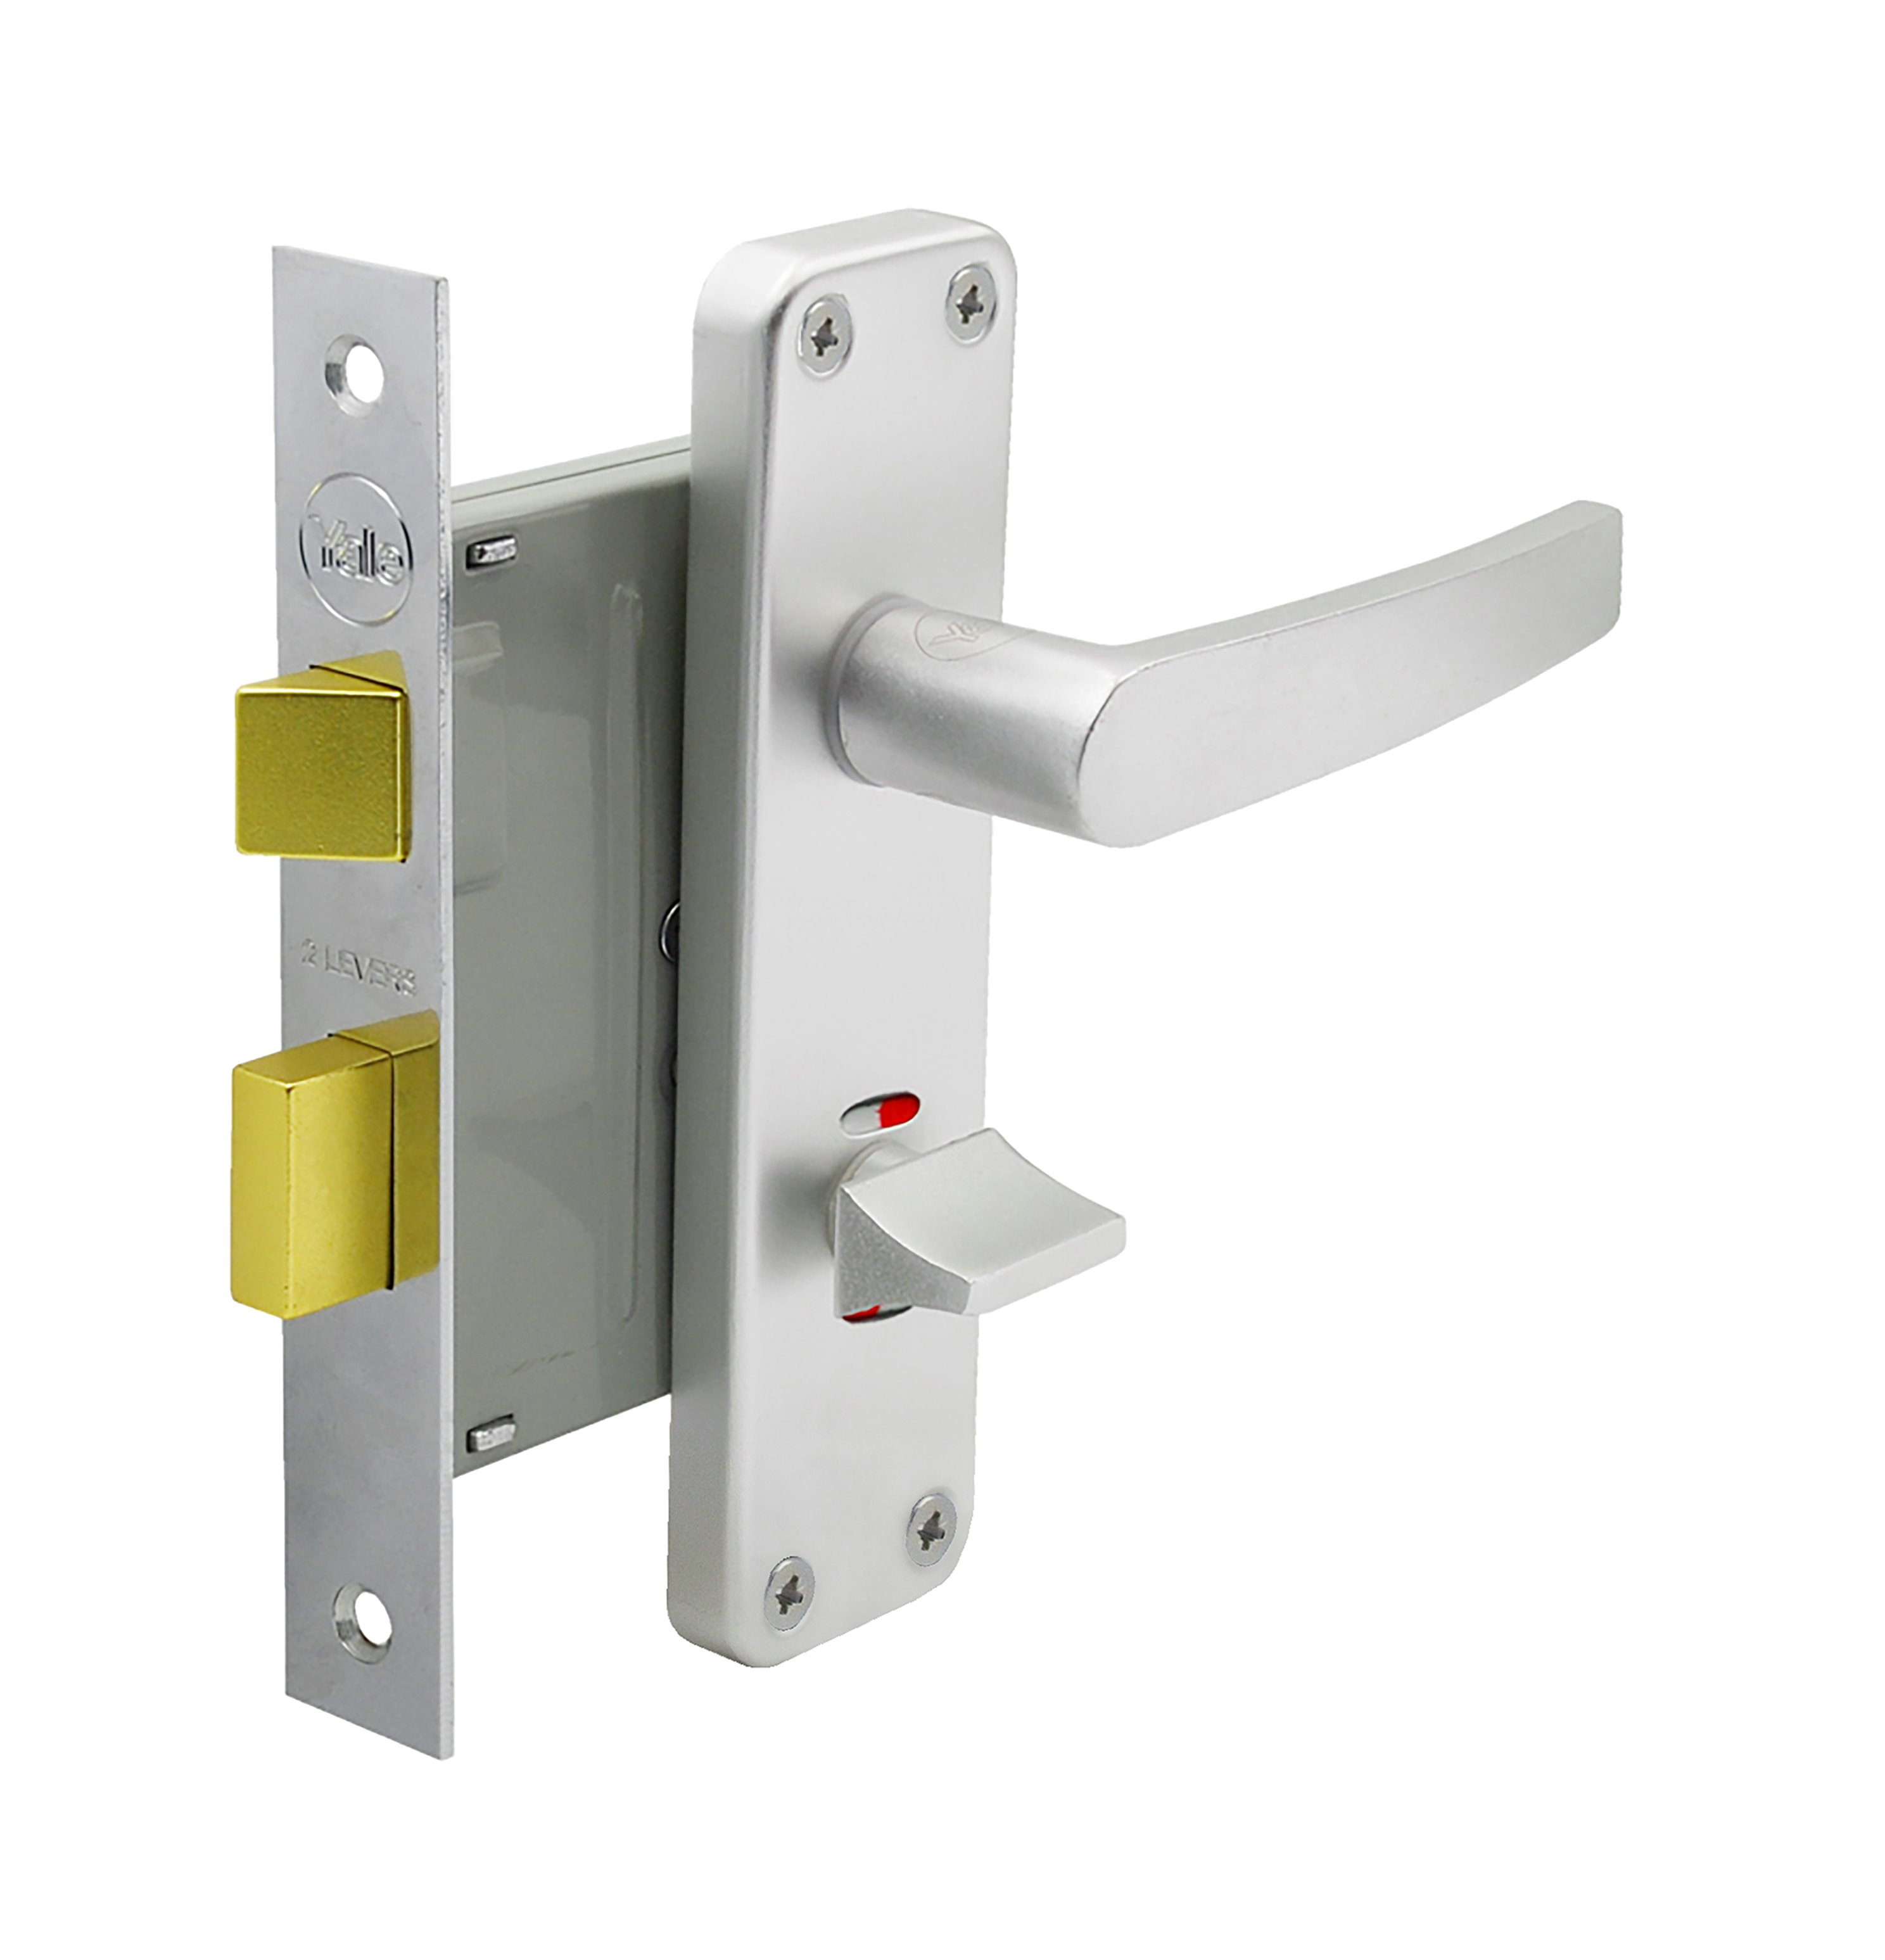 Bathroom lockset